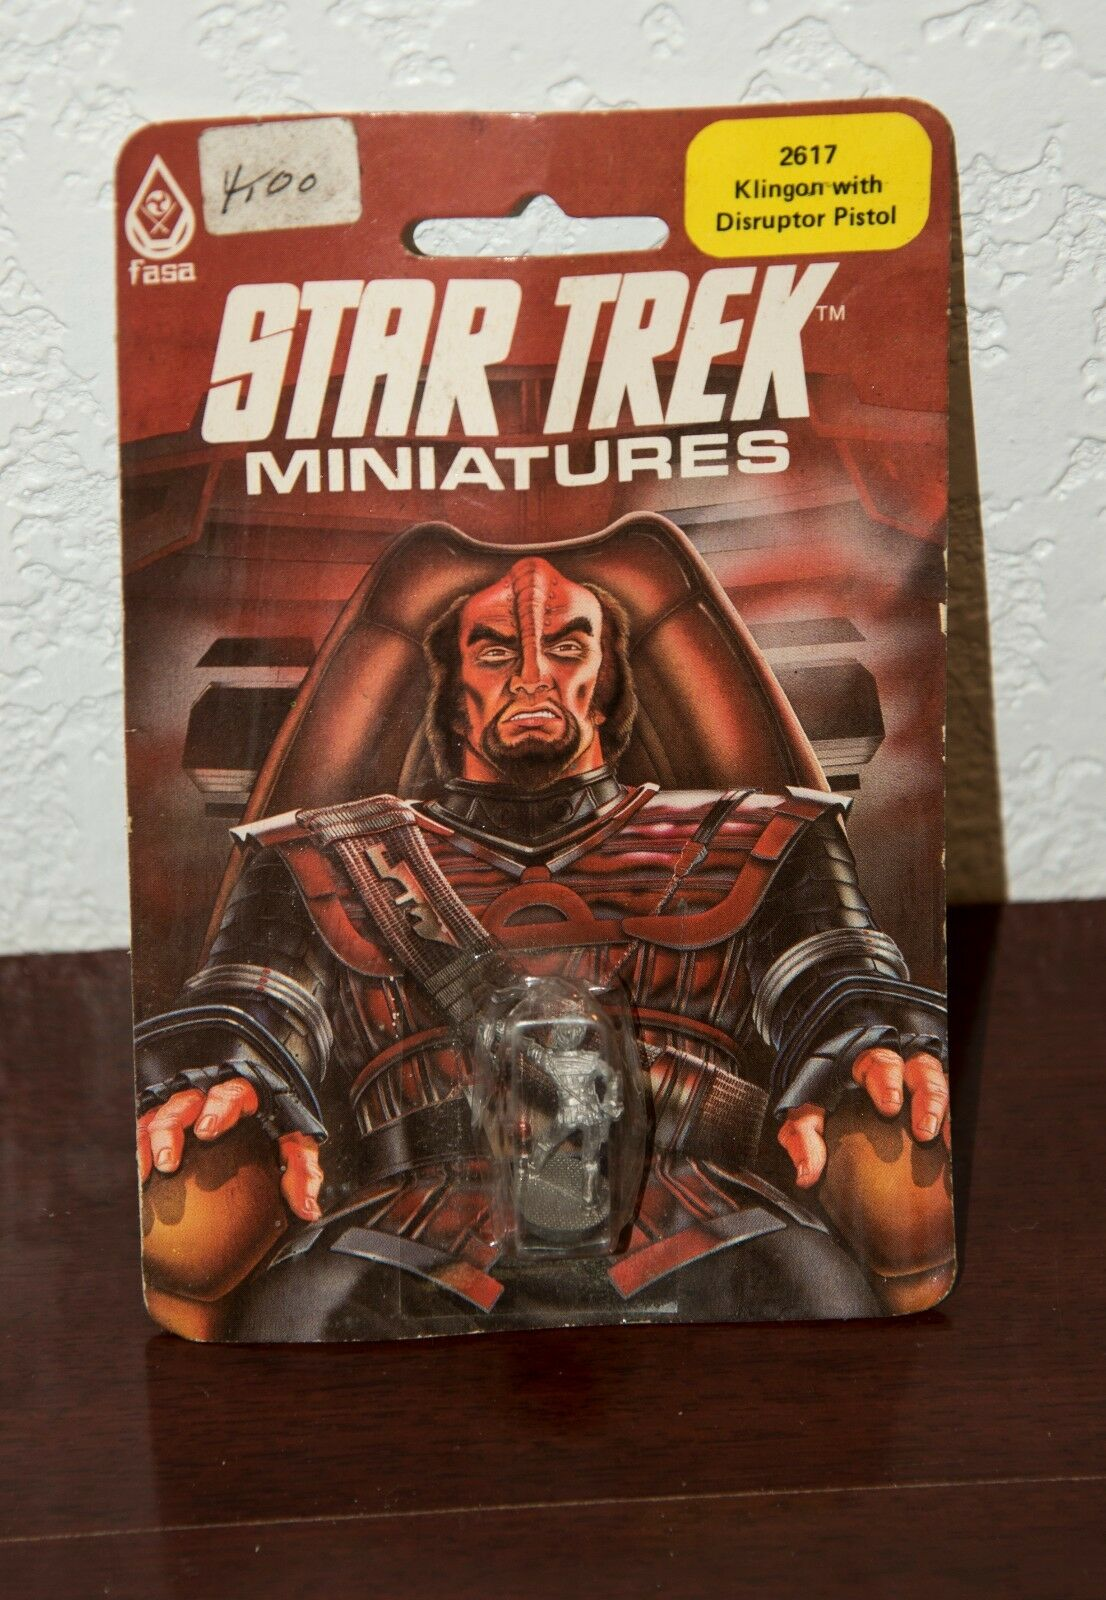 1983 STAR TREK MINATURES KLINGON WITH DISRUPTOR PISTOL COLLECTIBLE FIGURE MIP